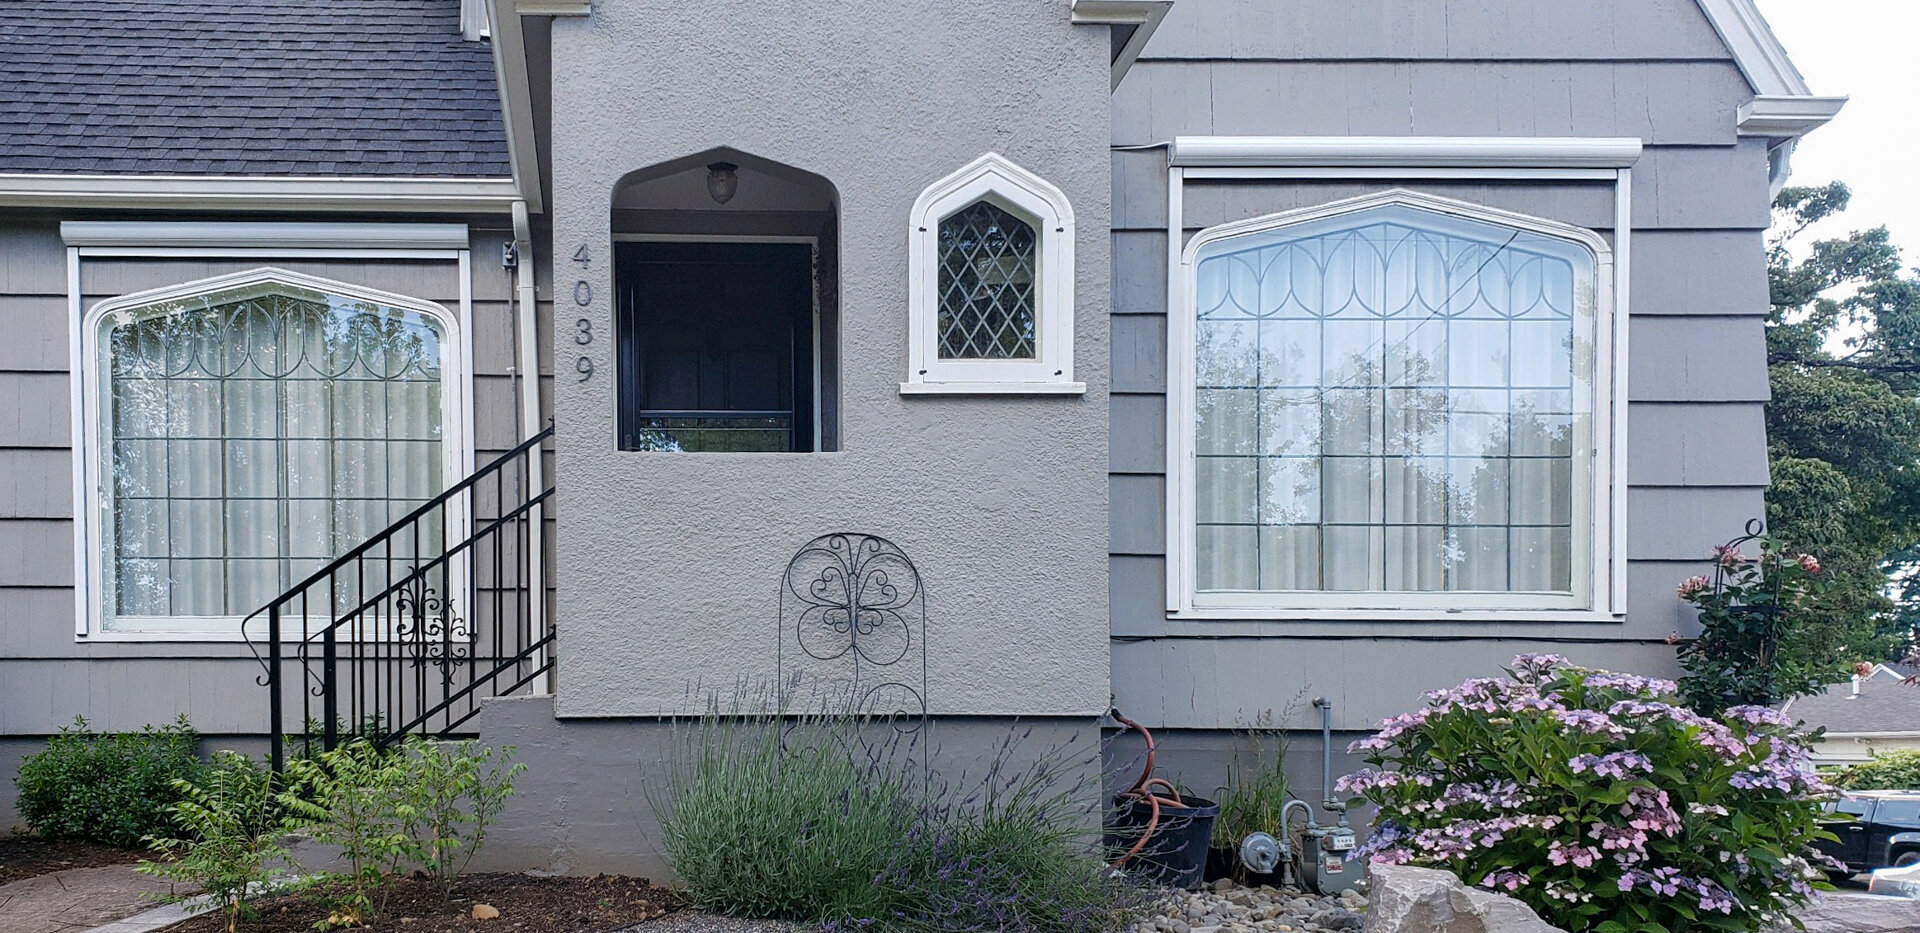 Staycation Home Improvement Ideas: Shades — ROSE CITY AWNING